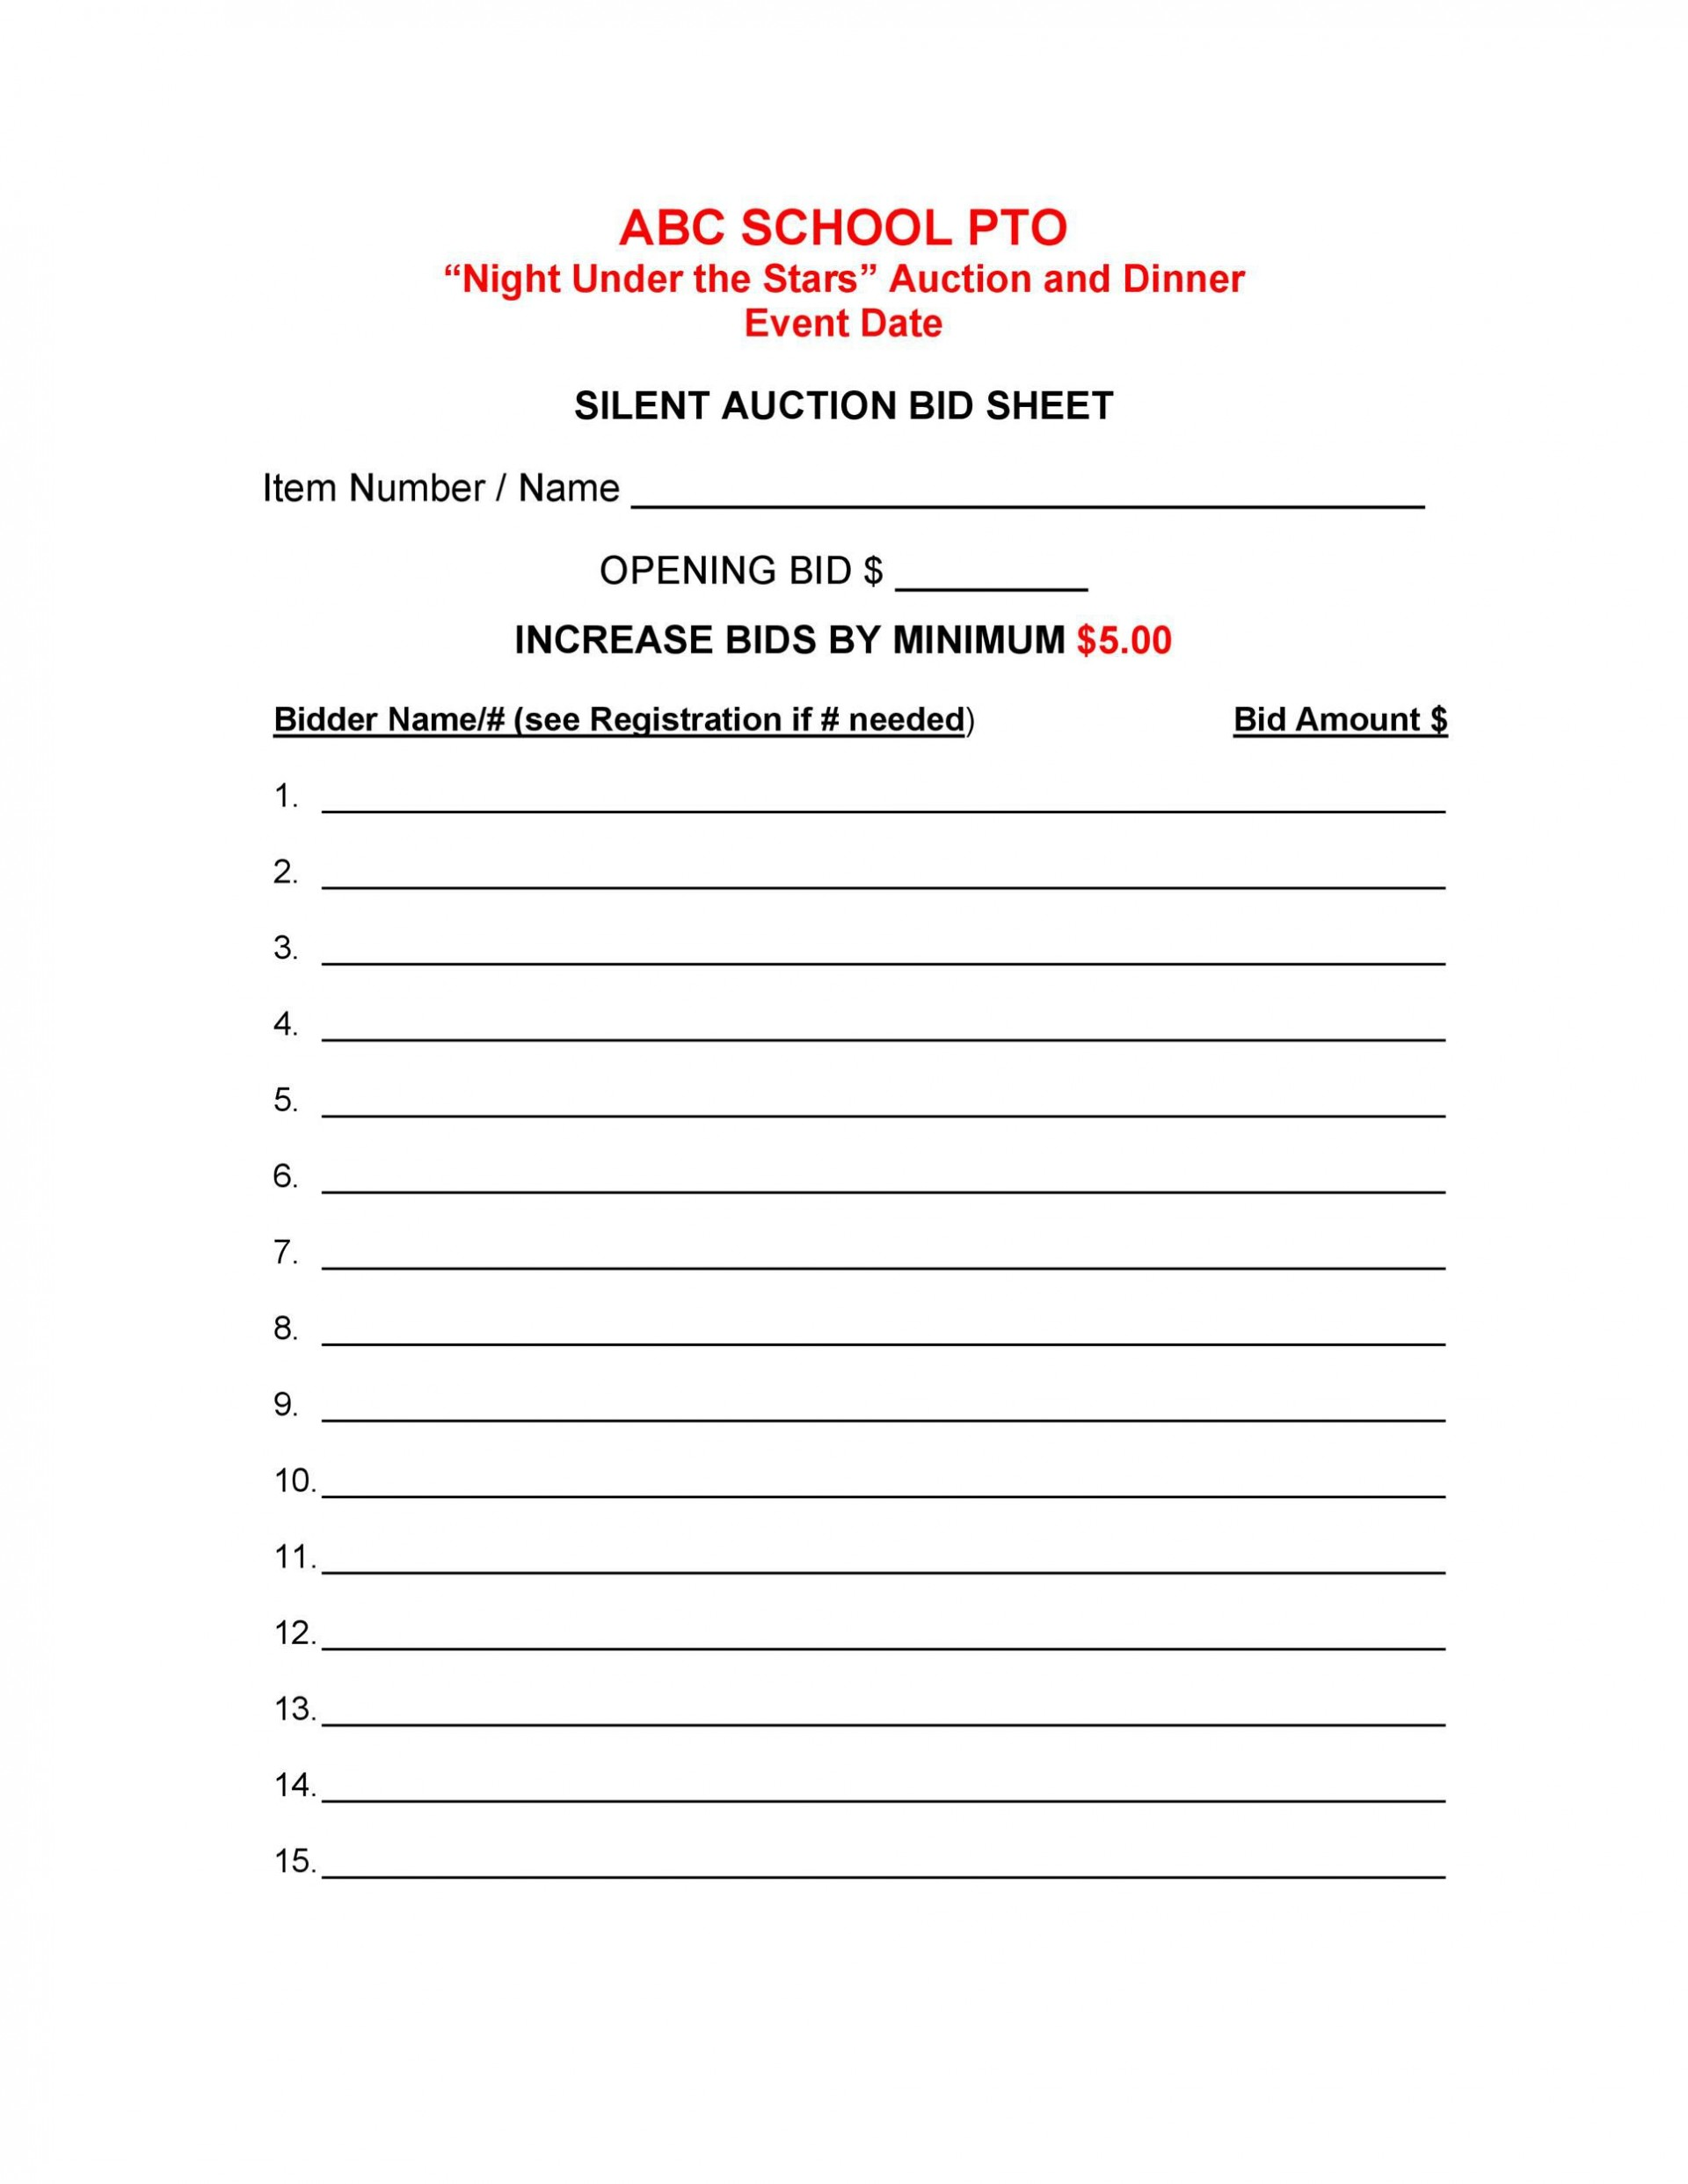 005 Unusual Silent Auction Bid Sheet Template High Def  Free Download Sample Microsoft Word1920